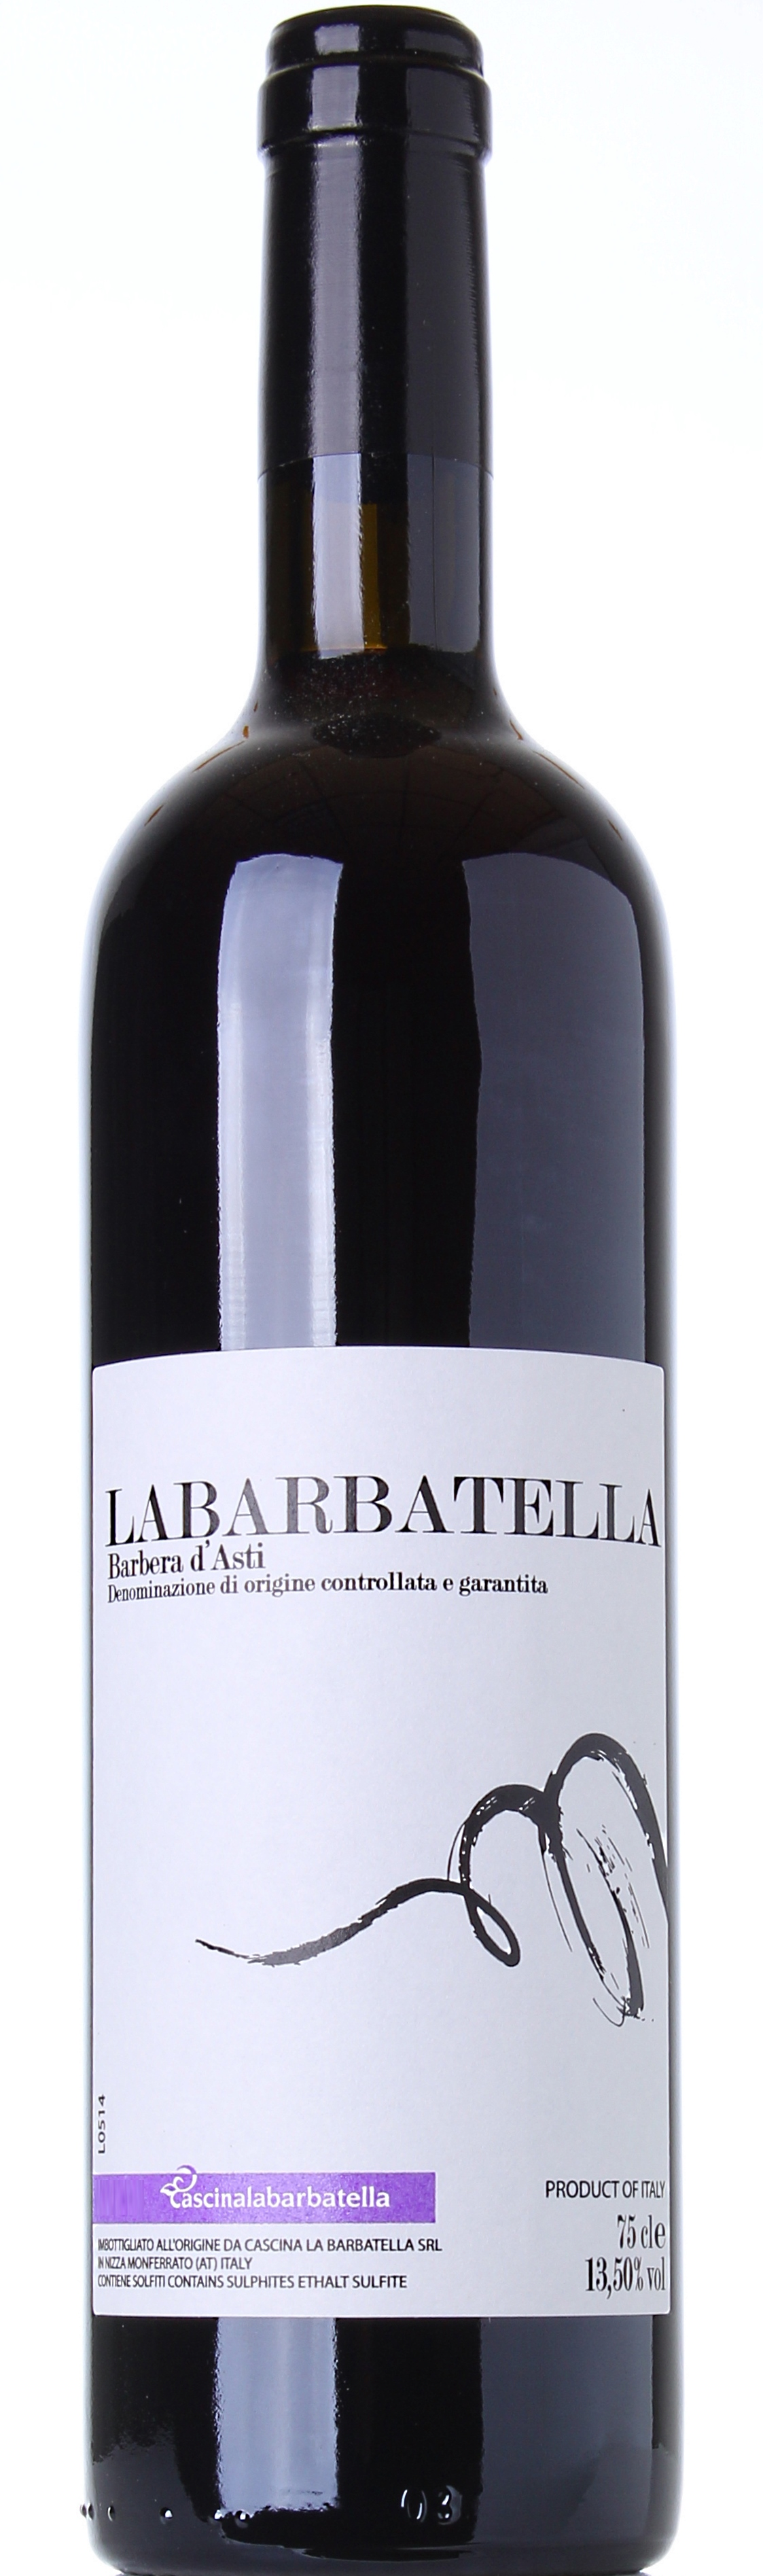 CASCINA LA BARBATELLA BARBERA D'ASTI 2012